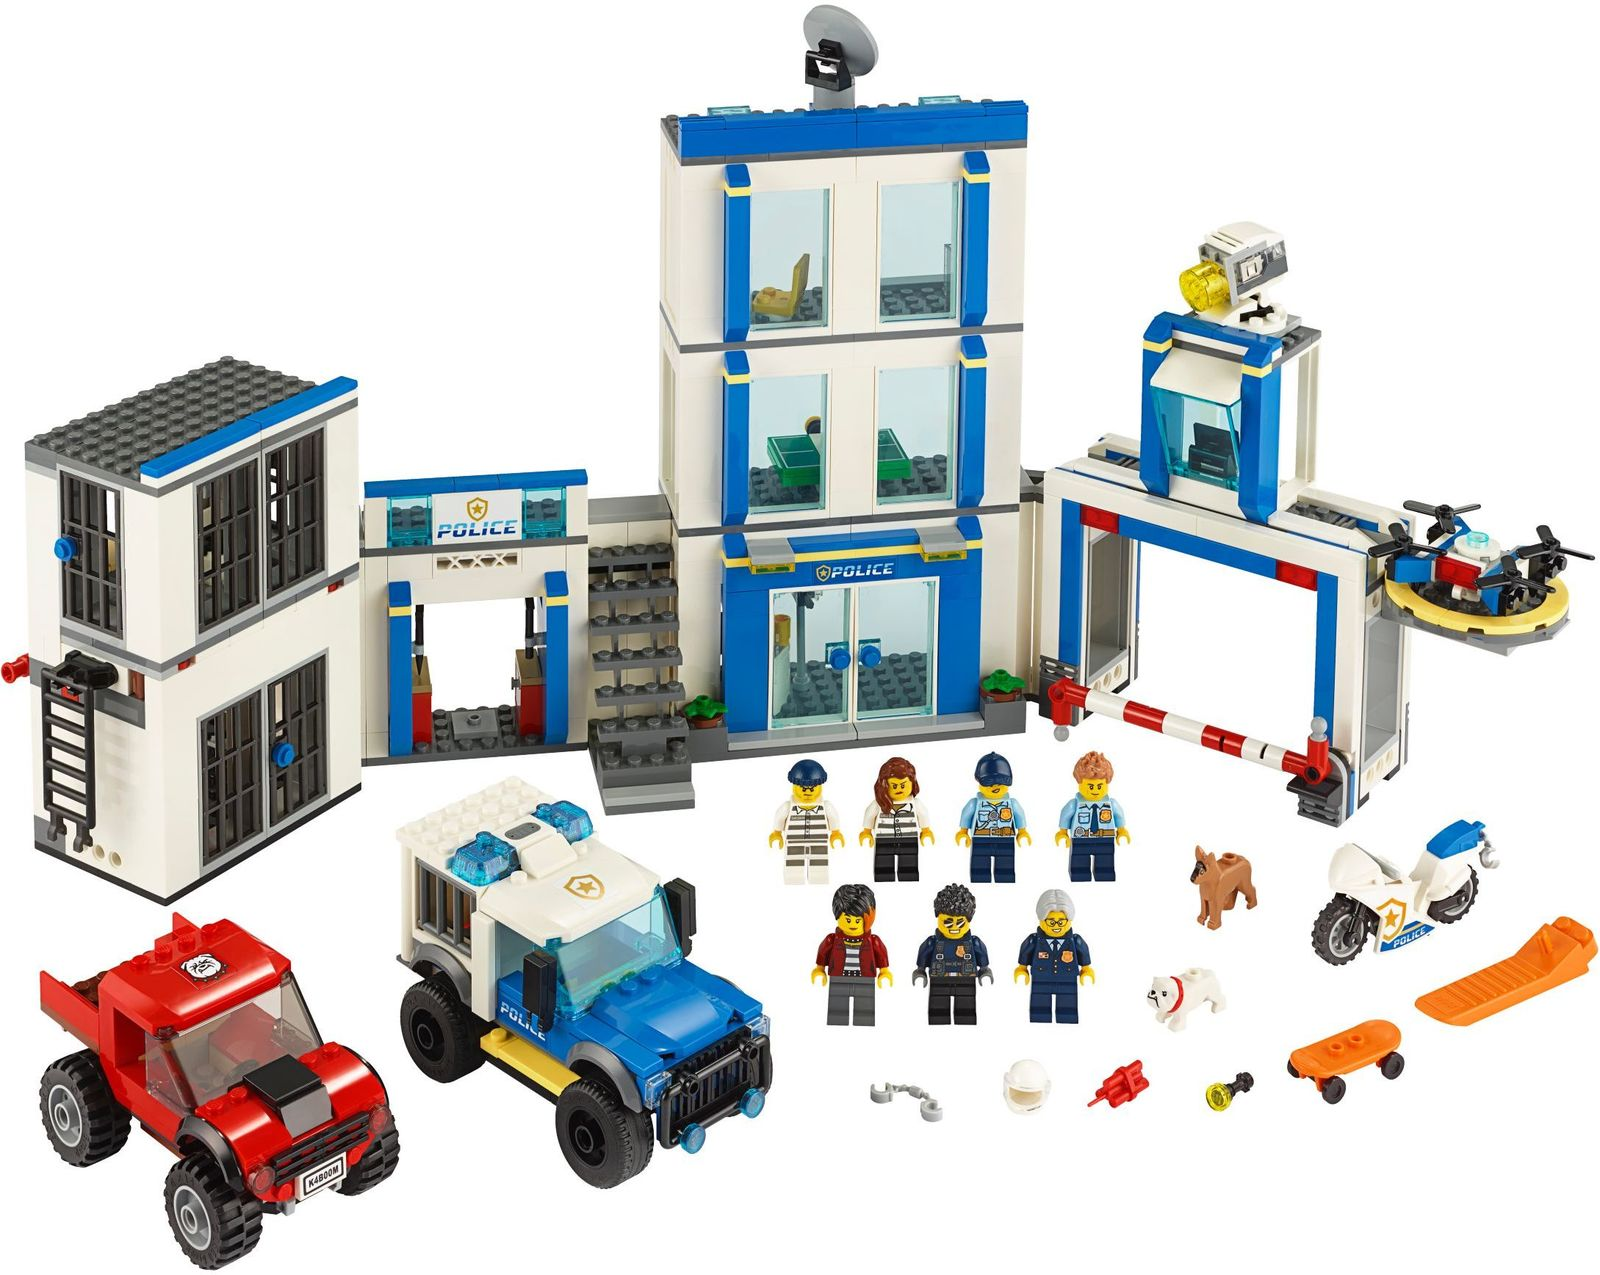 LEGO City - Police Station image